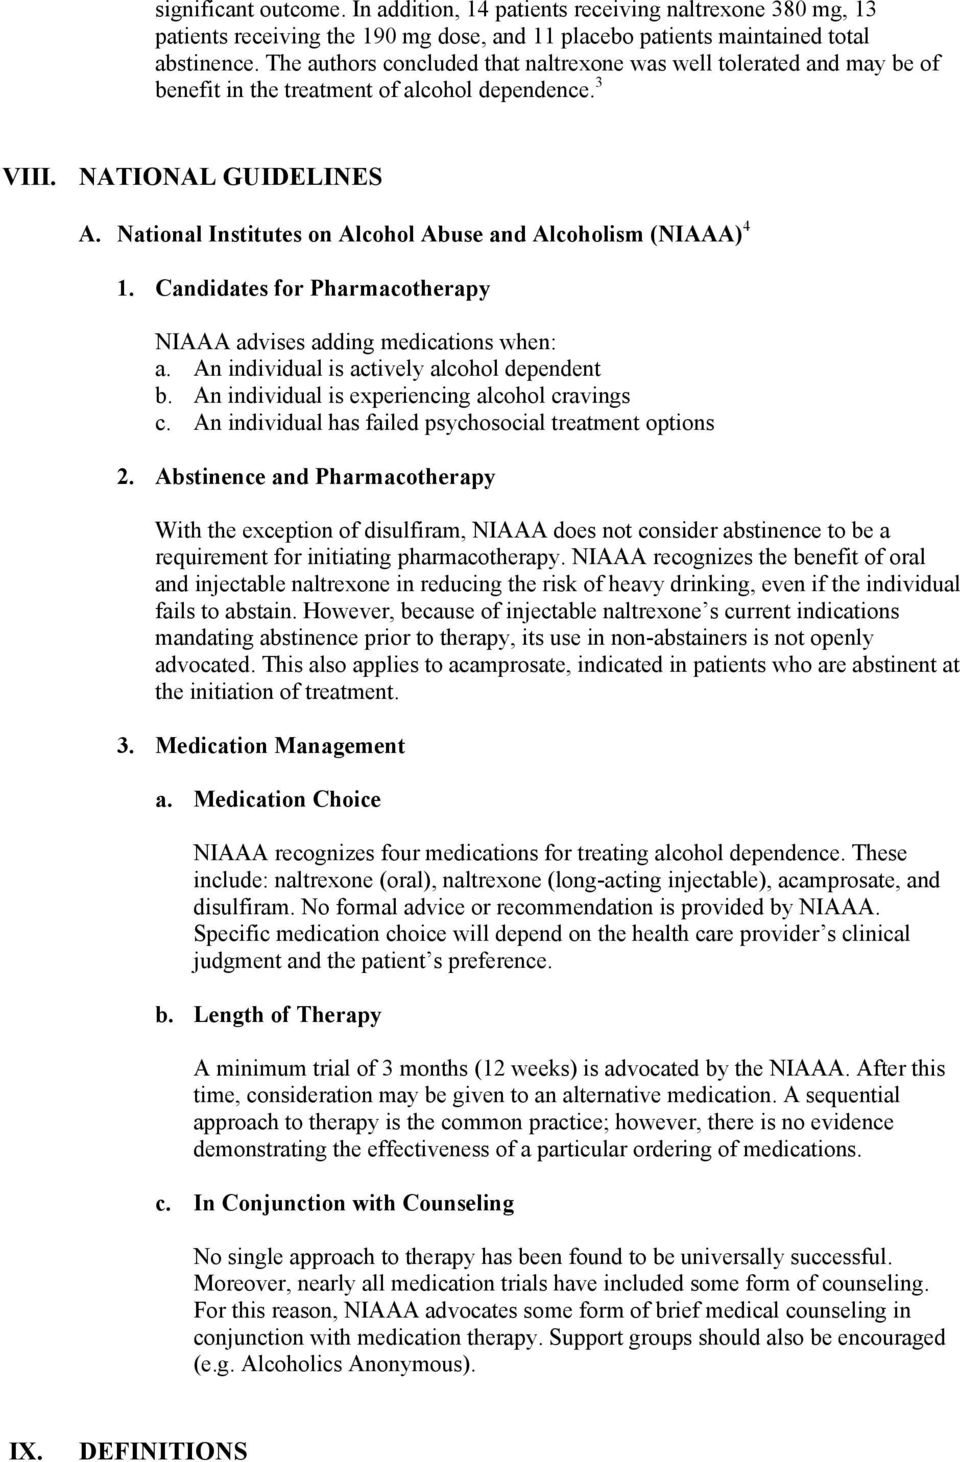 National Institutes on Alcohol Abuse and Alcoholism (NIAAA) 4 1. Candidates for Pharmacotherapy NIAAA advises adding medications when: a. An individual is actively alcohol dependent b.